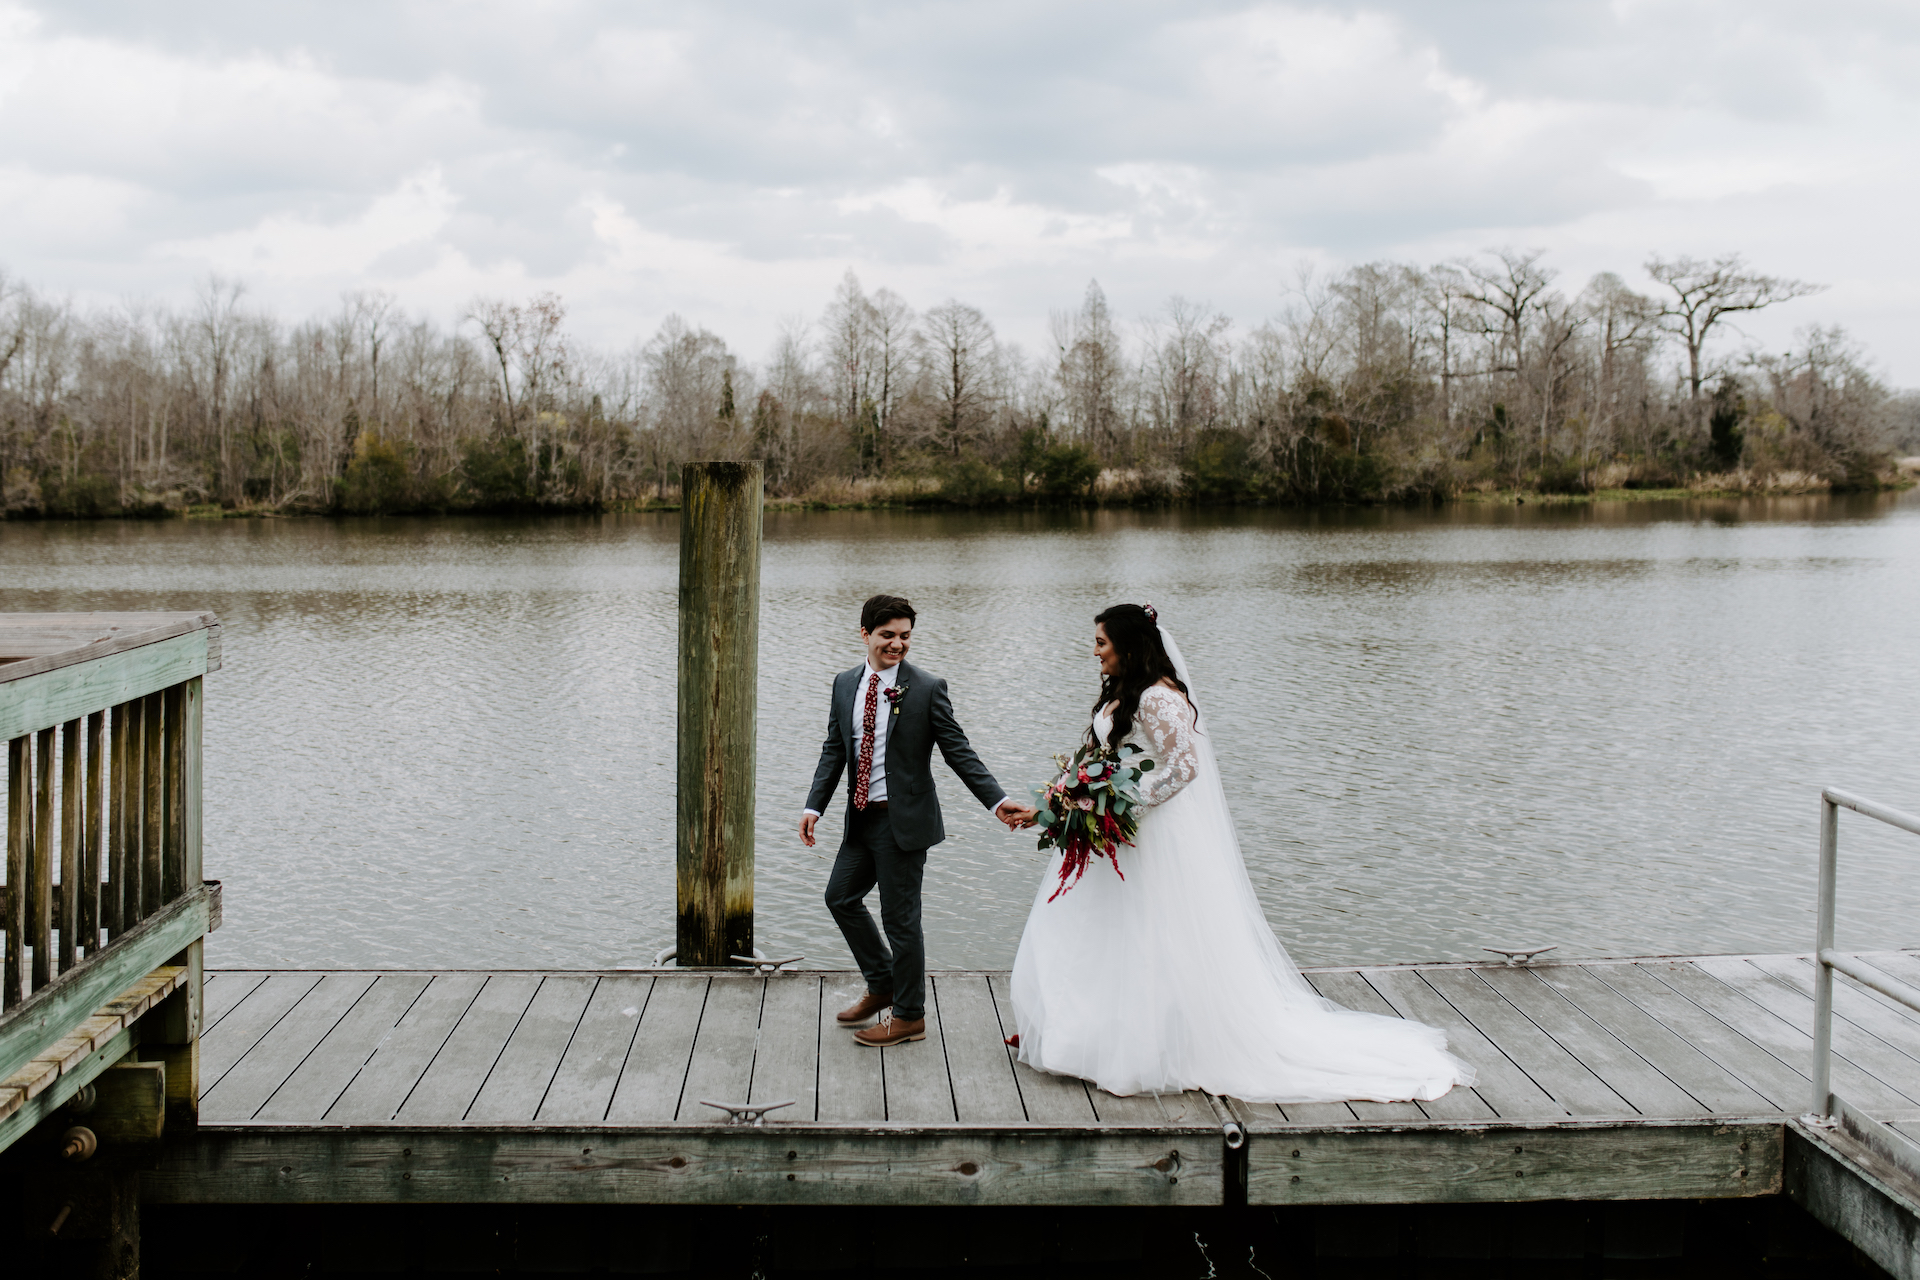 Jen + Frankie | Charleston, South Carolina | Old Santee Canal Park